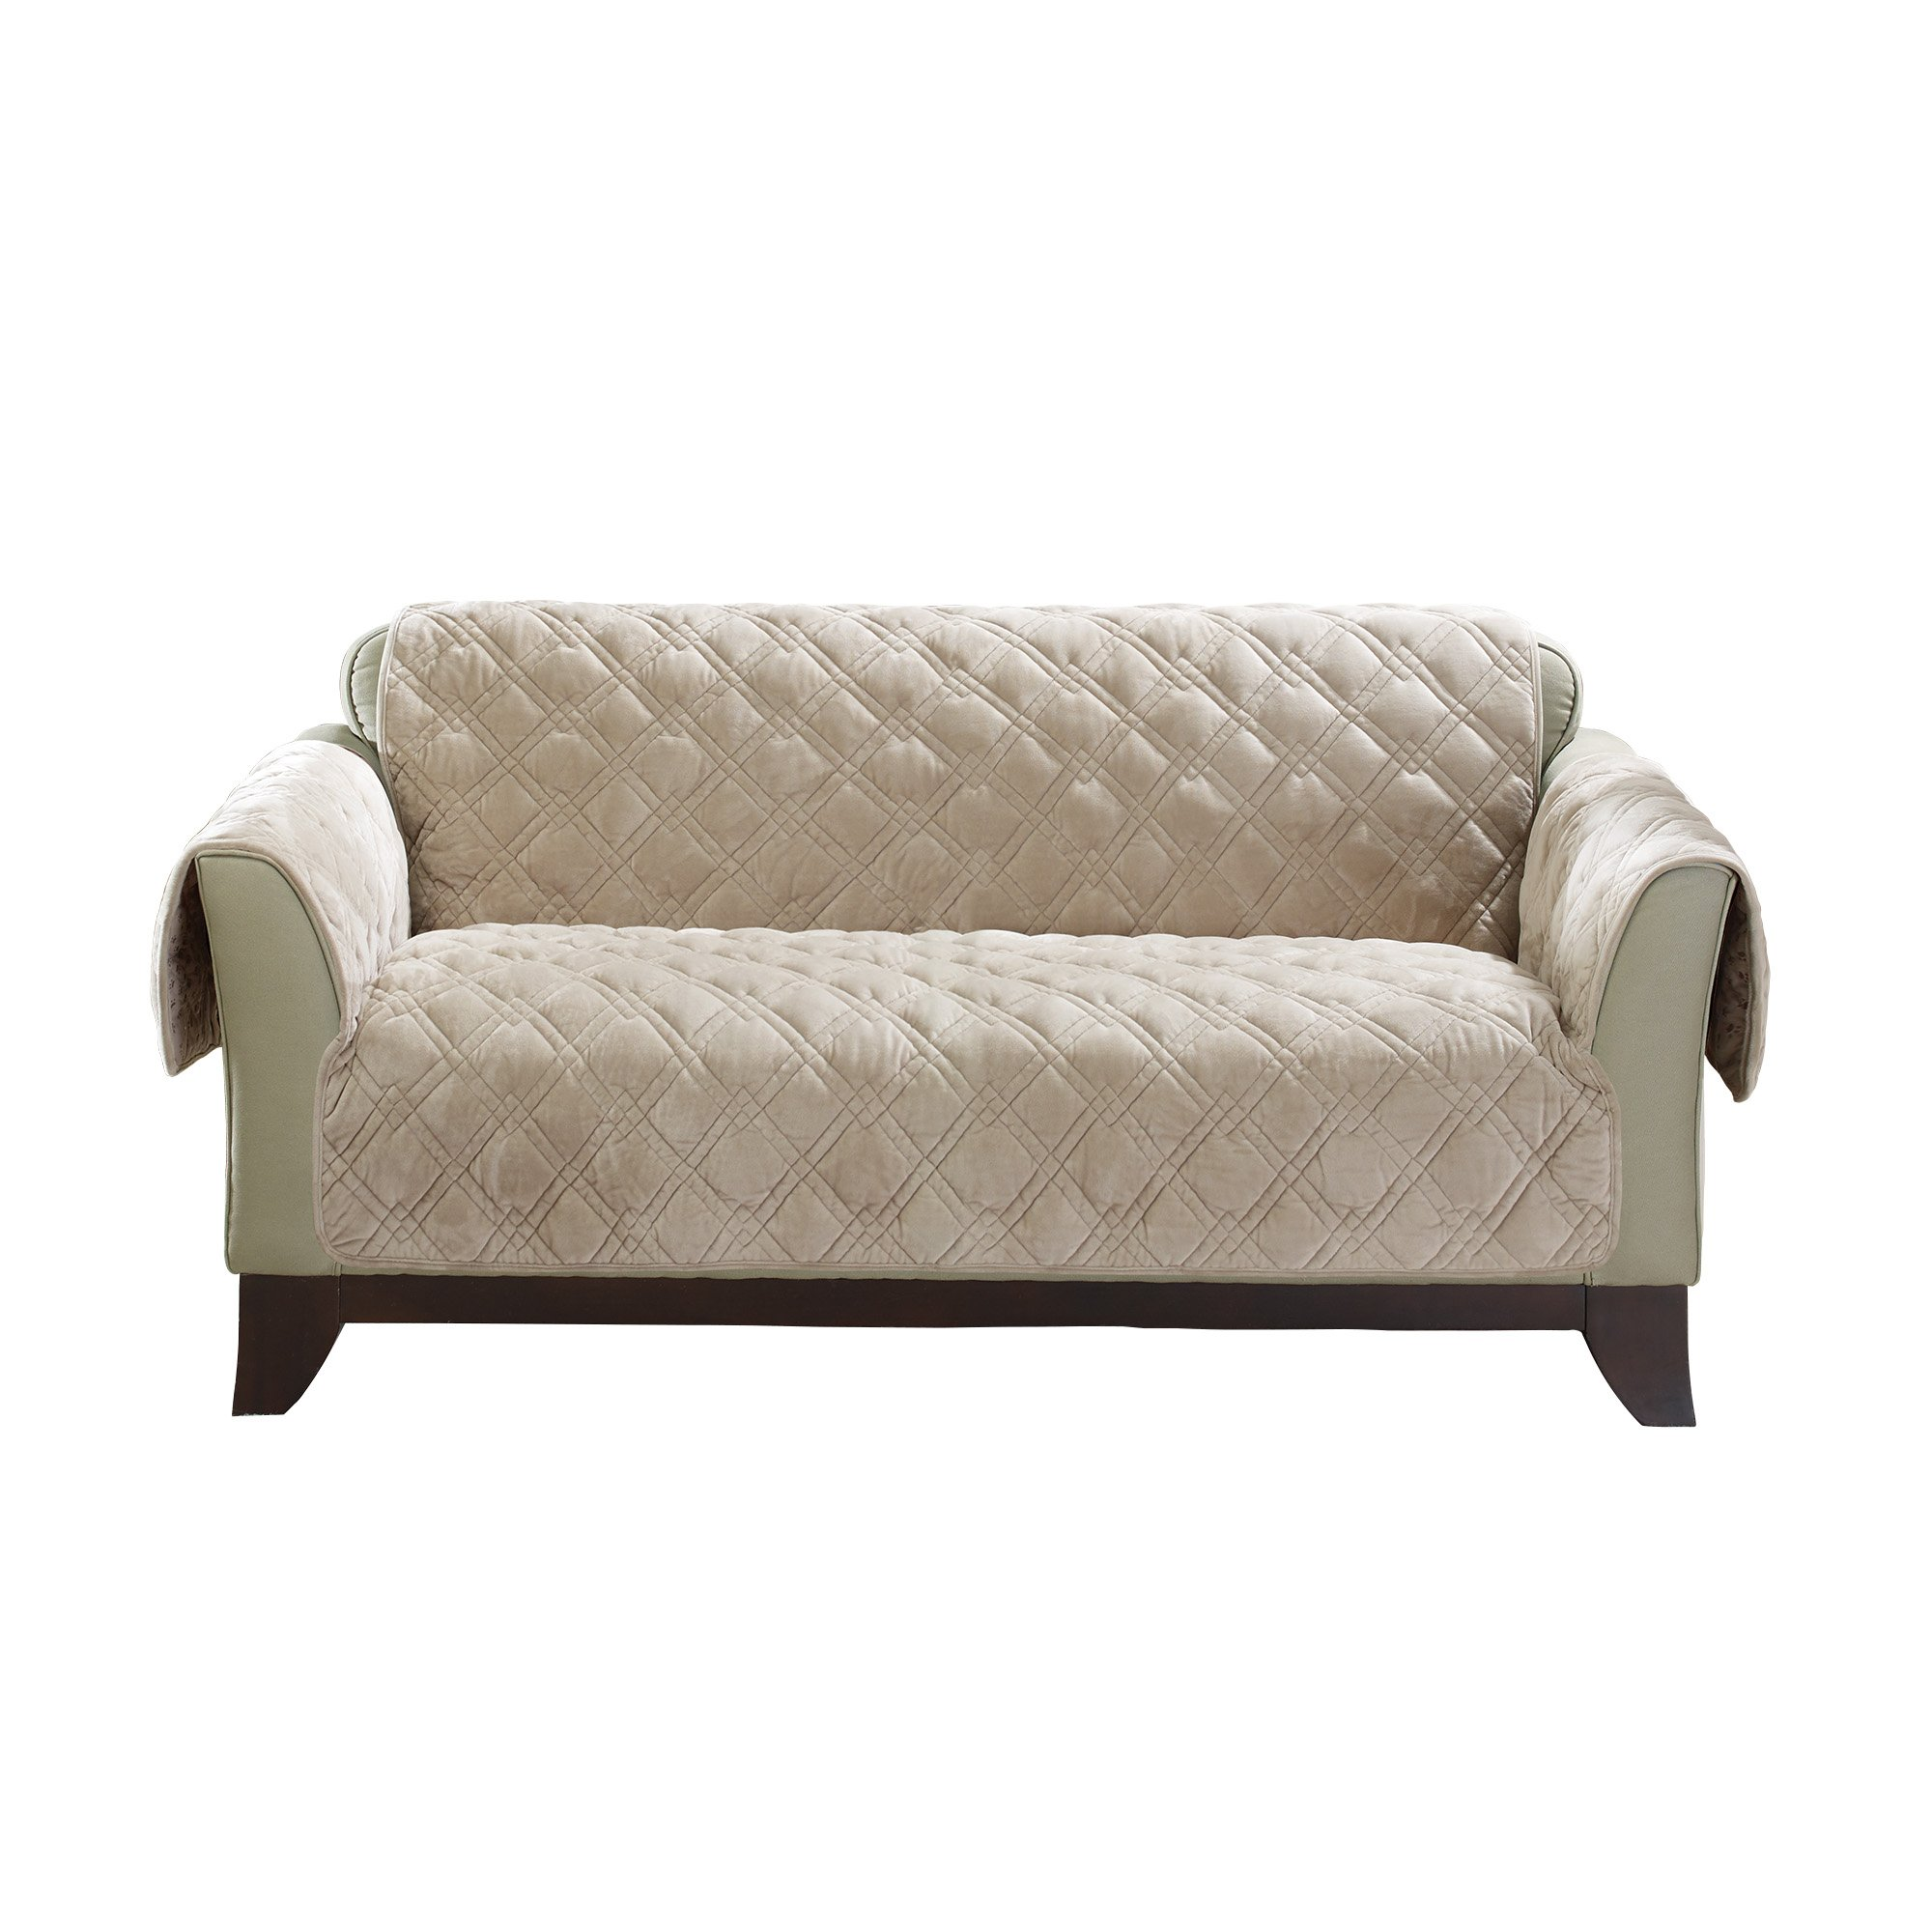 Sure Fit Plush Comfort Furniture Protector with Non Slip Backing, Loveseat, Taupe by Surefit